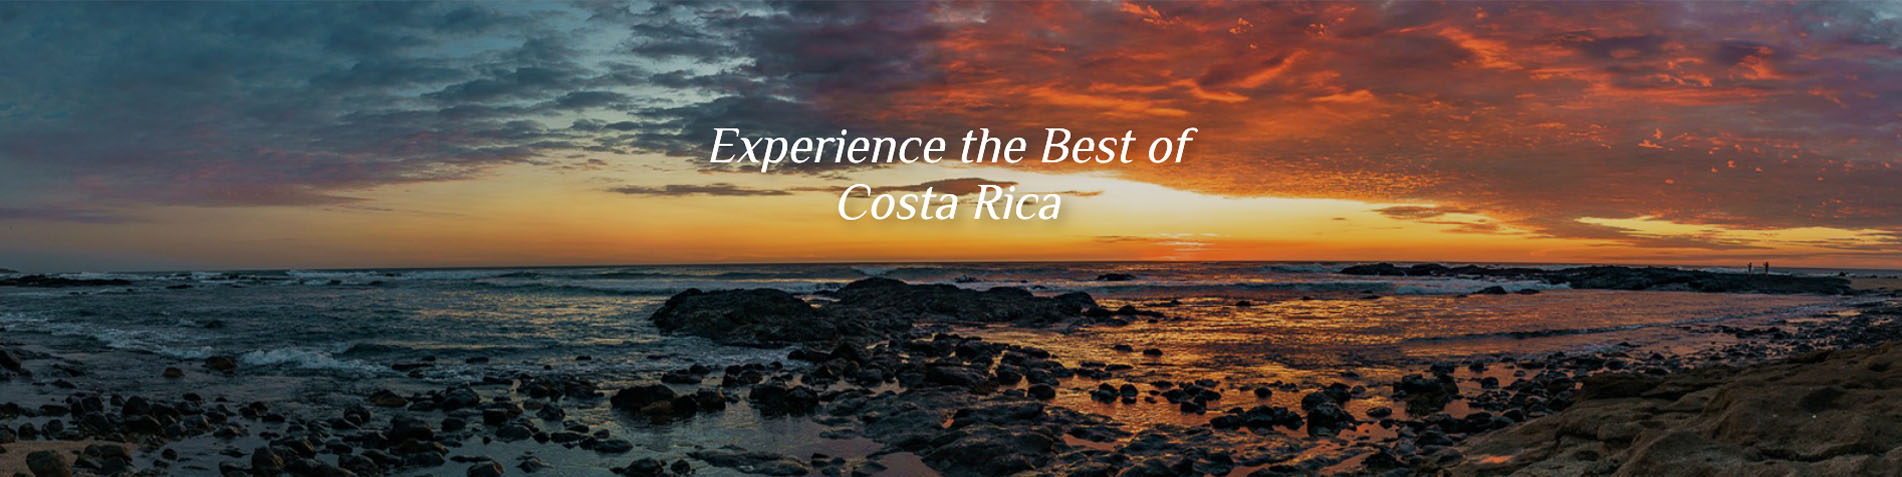 experience-the-best2